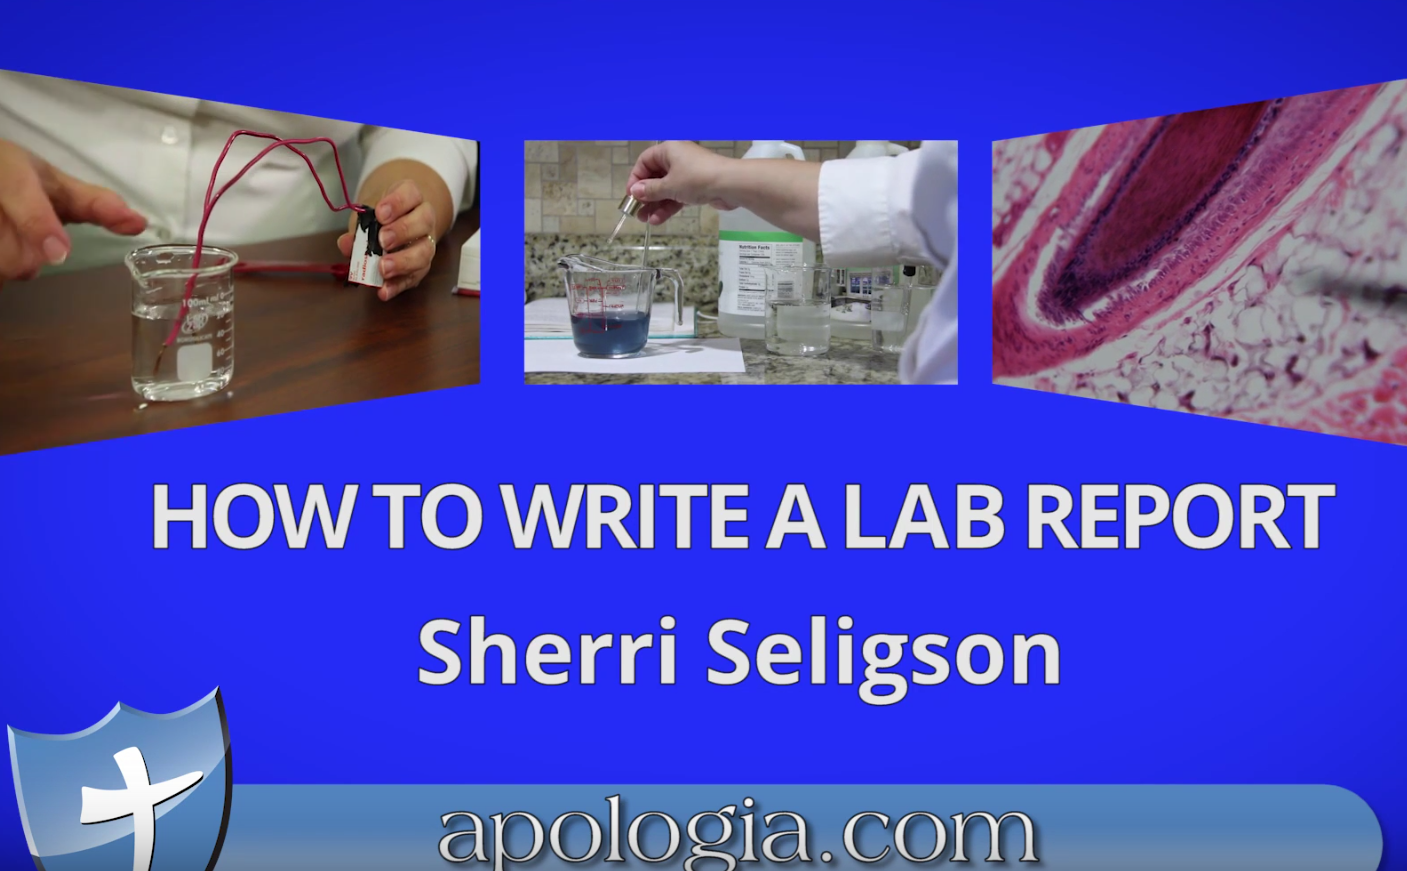 How To Write a Lab Report - Apologia